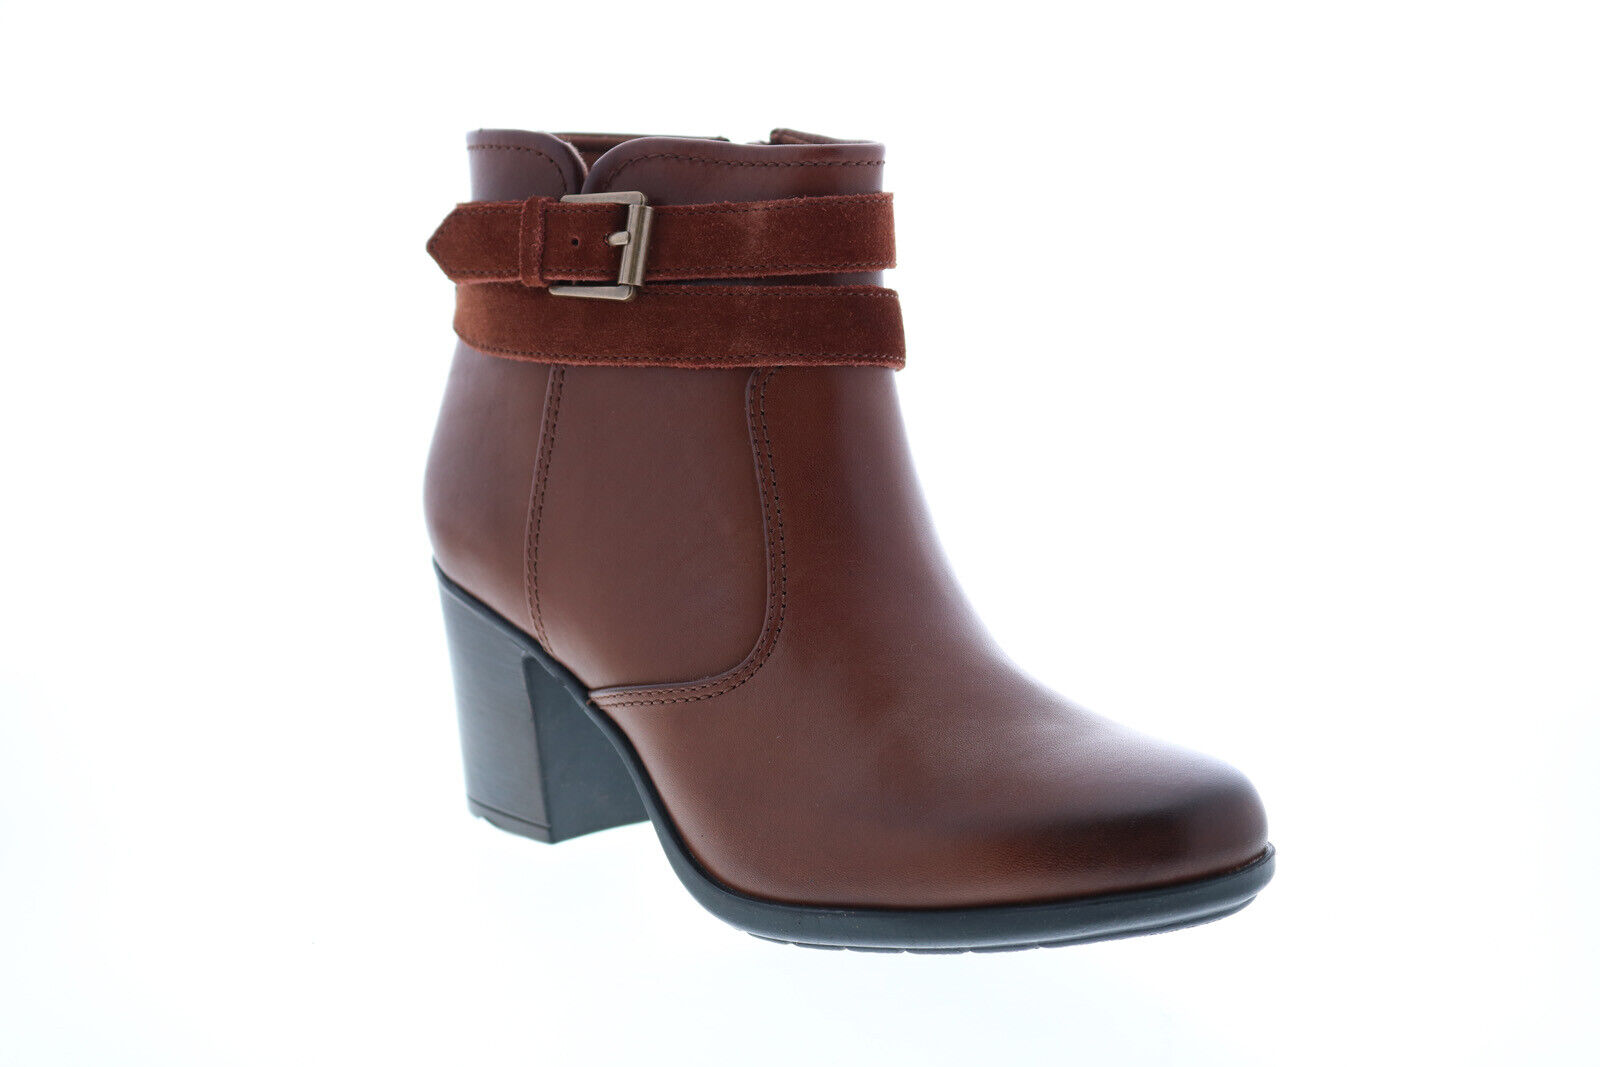 Clarks Diane Peake 26152974 Womens Brown Leather Ankle & Booties Boots